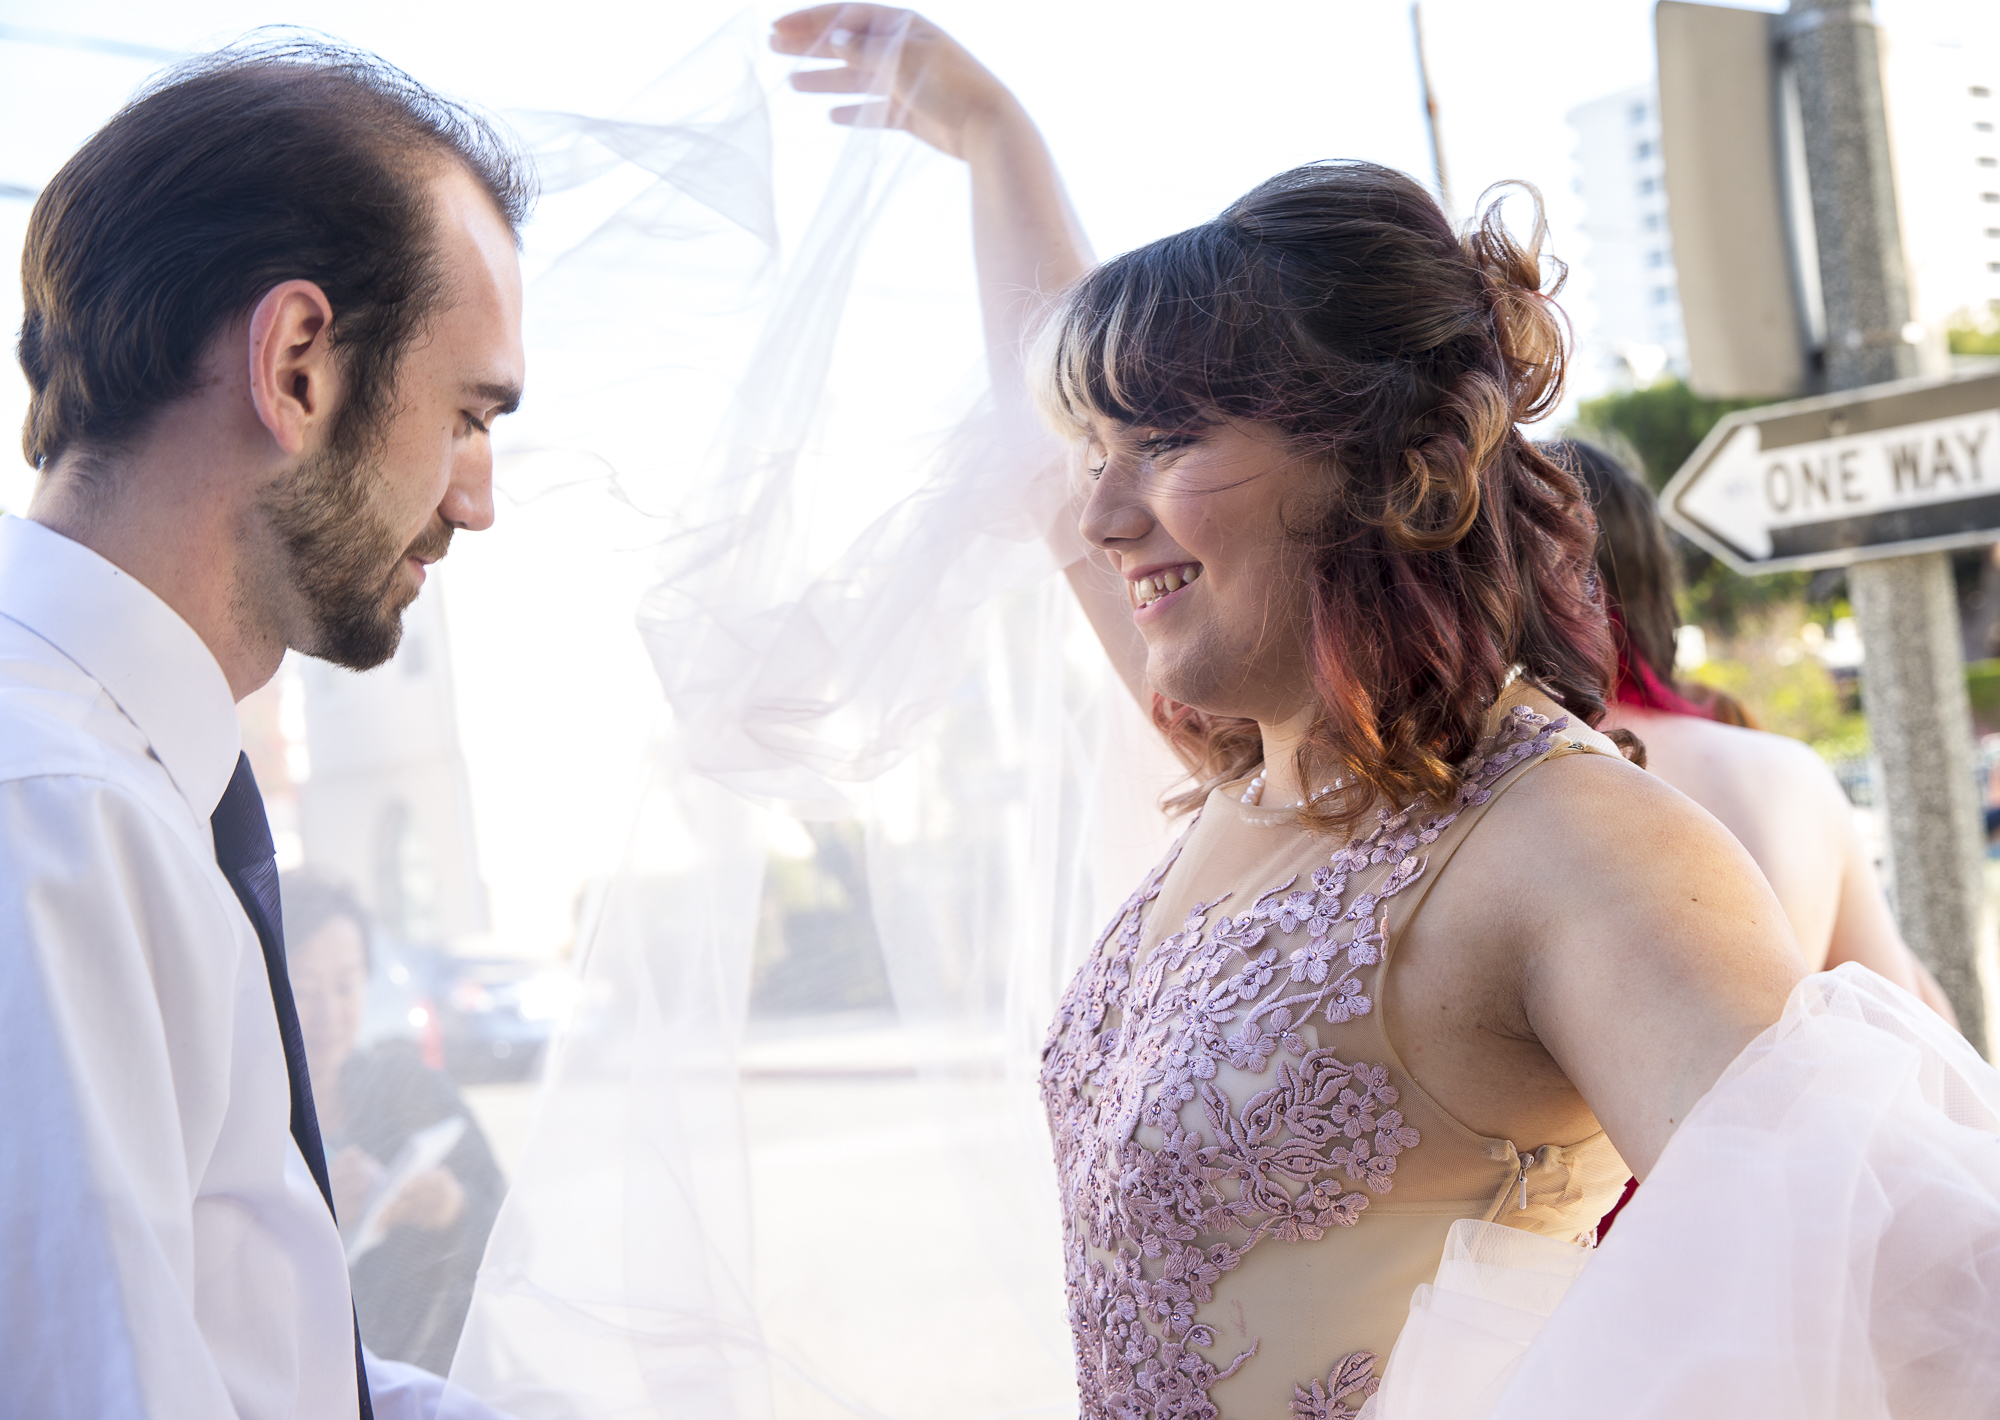 Martin/Corsair Photo)